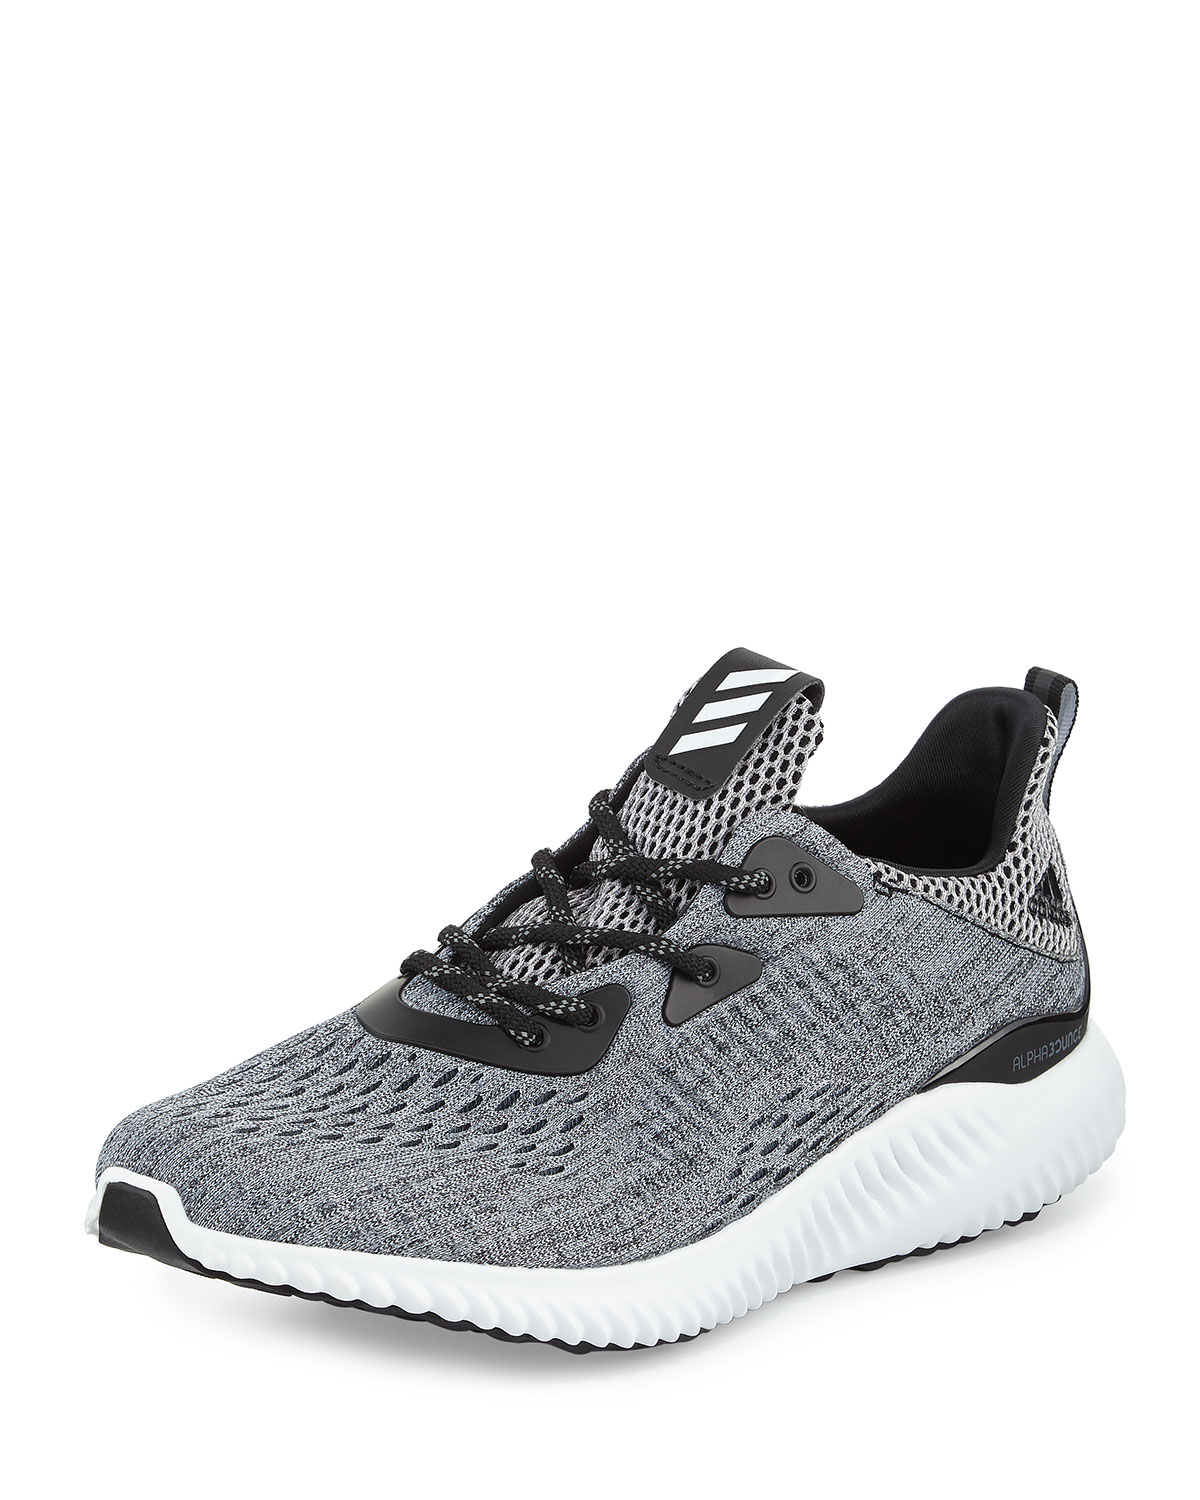 6221c77e2 Adidas Alphabounce Engineered Mesh Sneaker